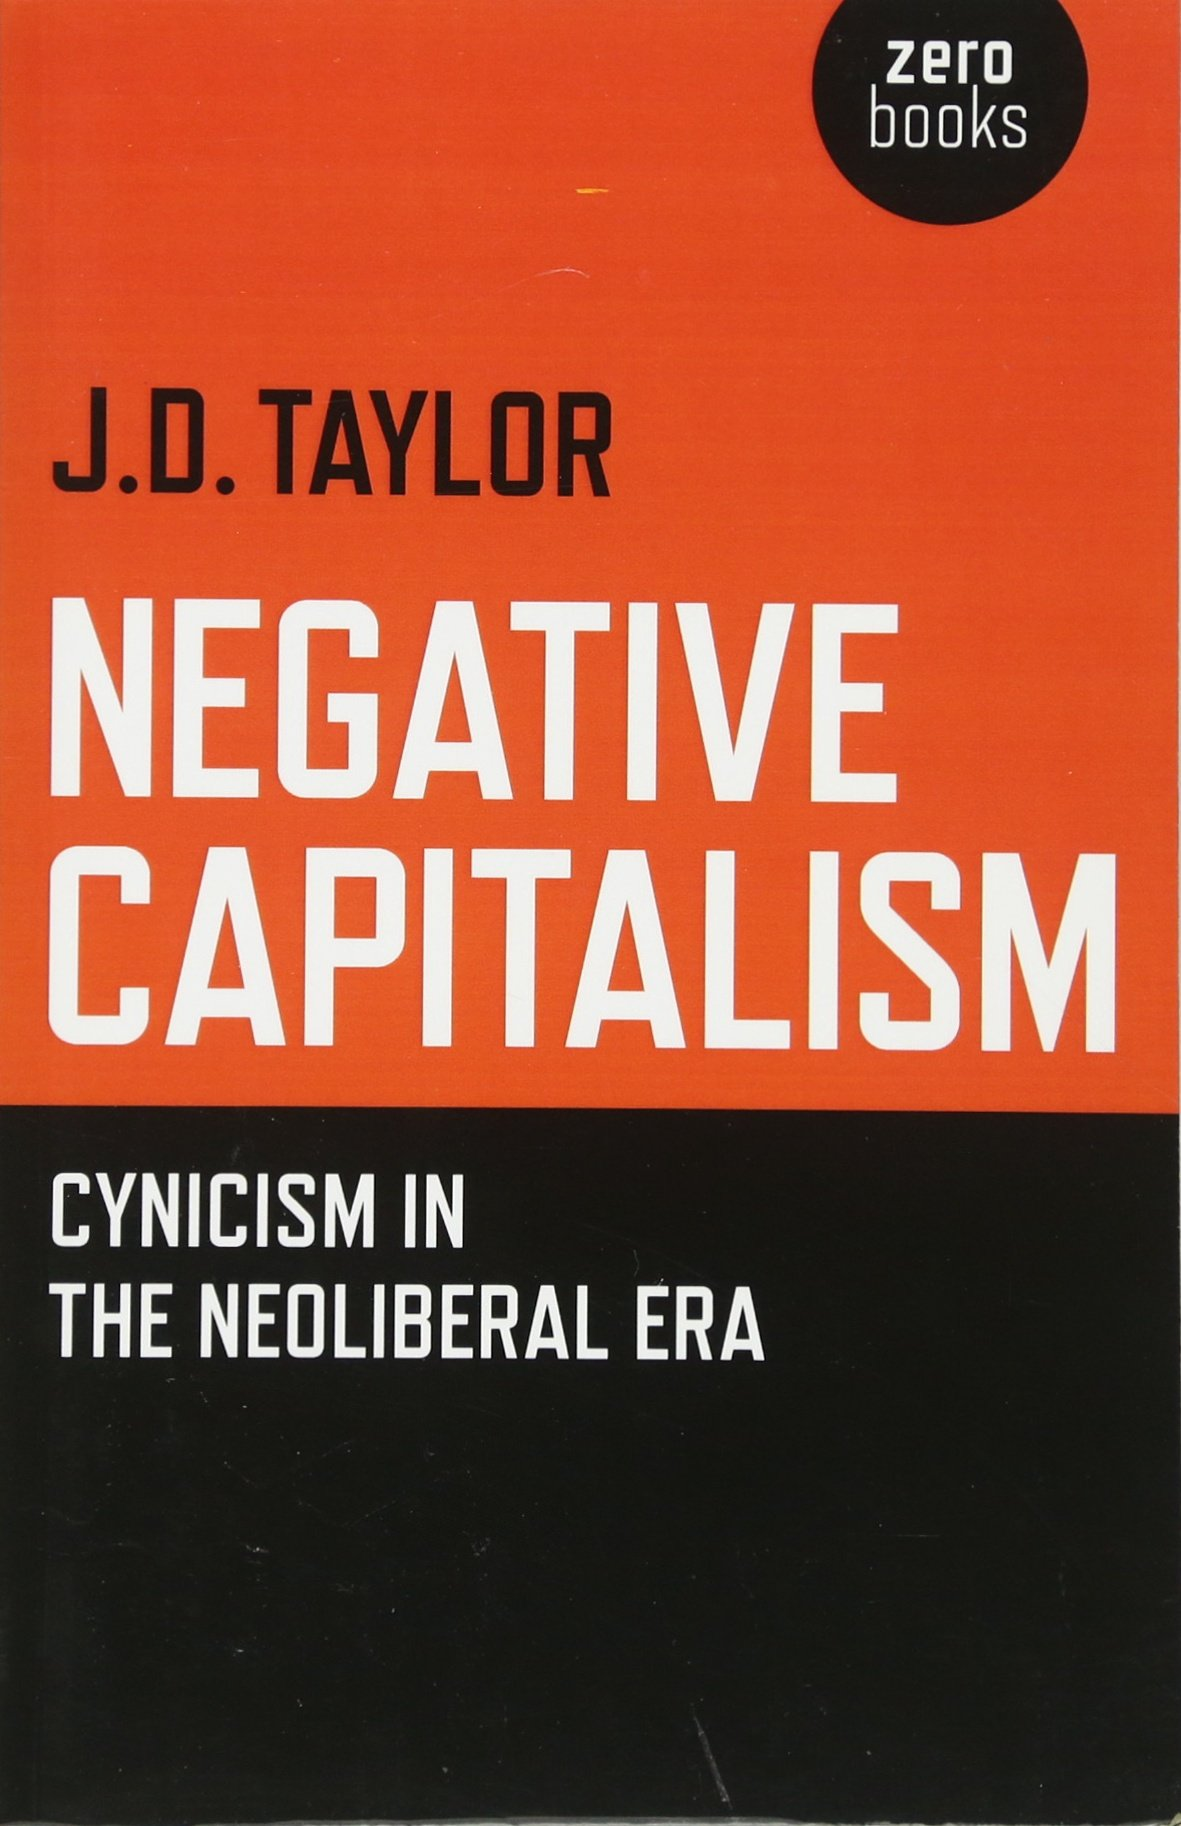 Negative Capitalism: Cynicism in the Neoliberal Era